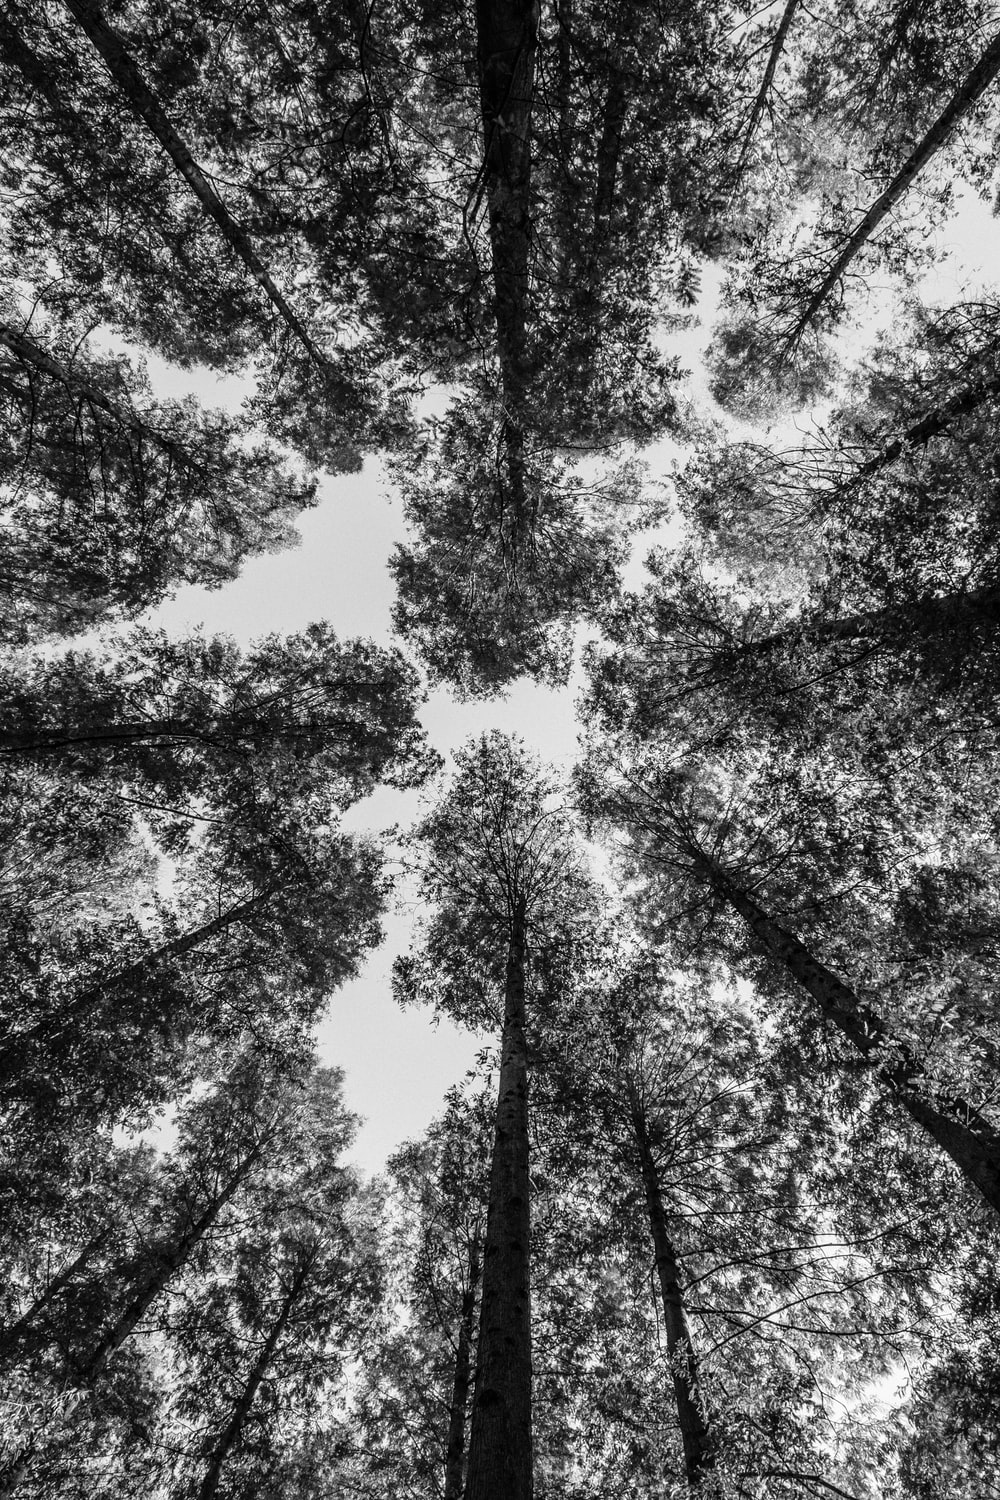 worm view photography of trees